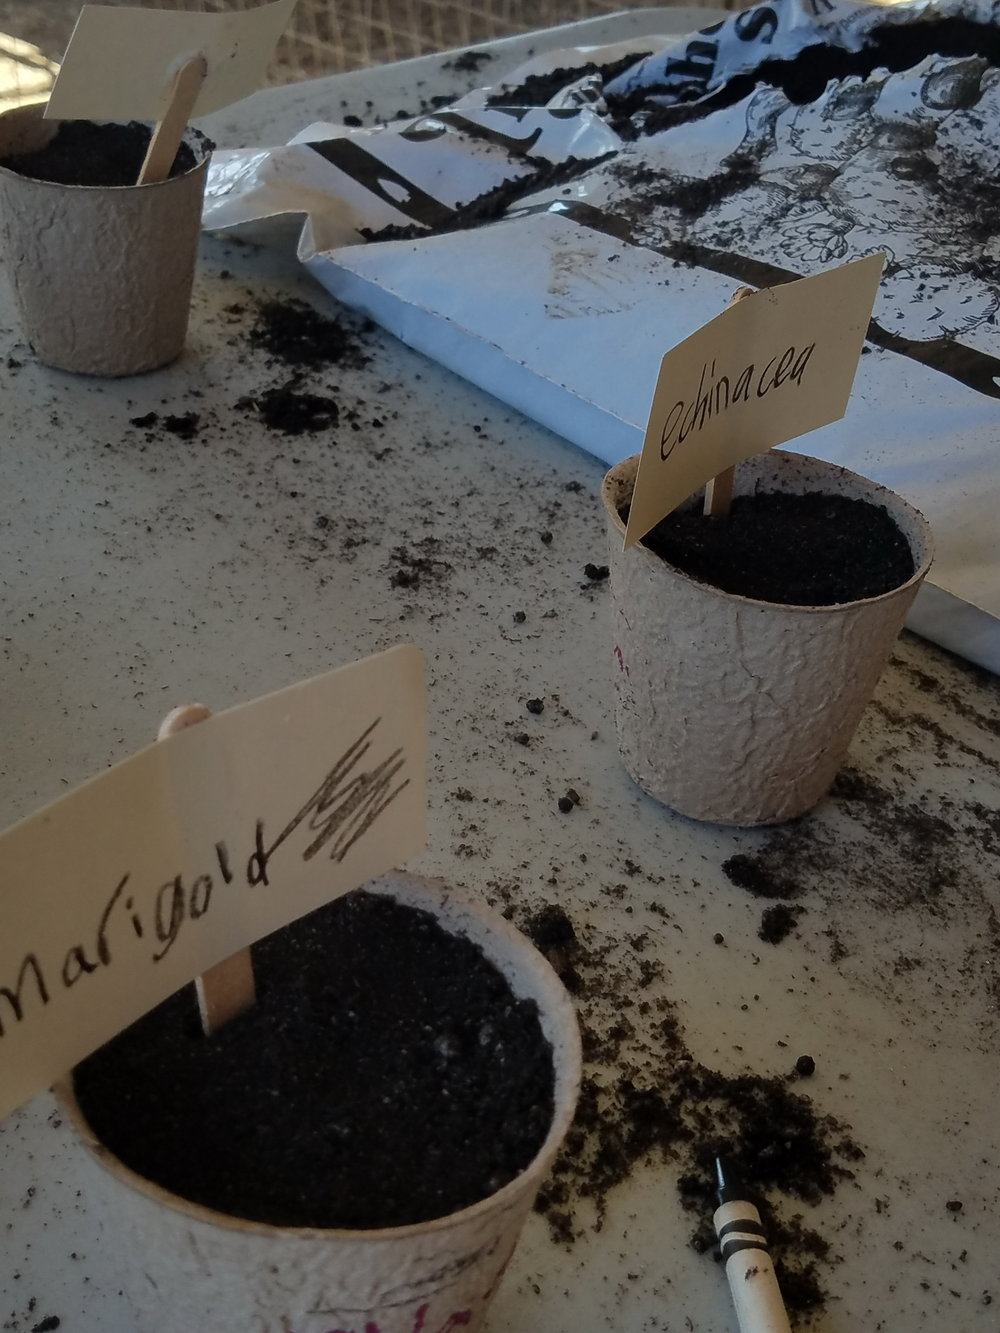 Lots of fine motor skills in action with this simple seed planting activity.